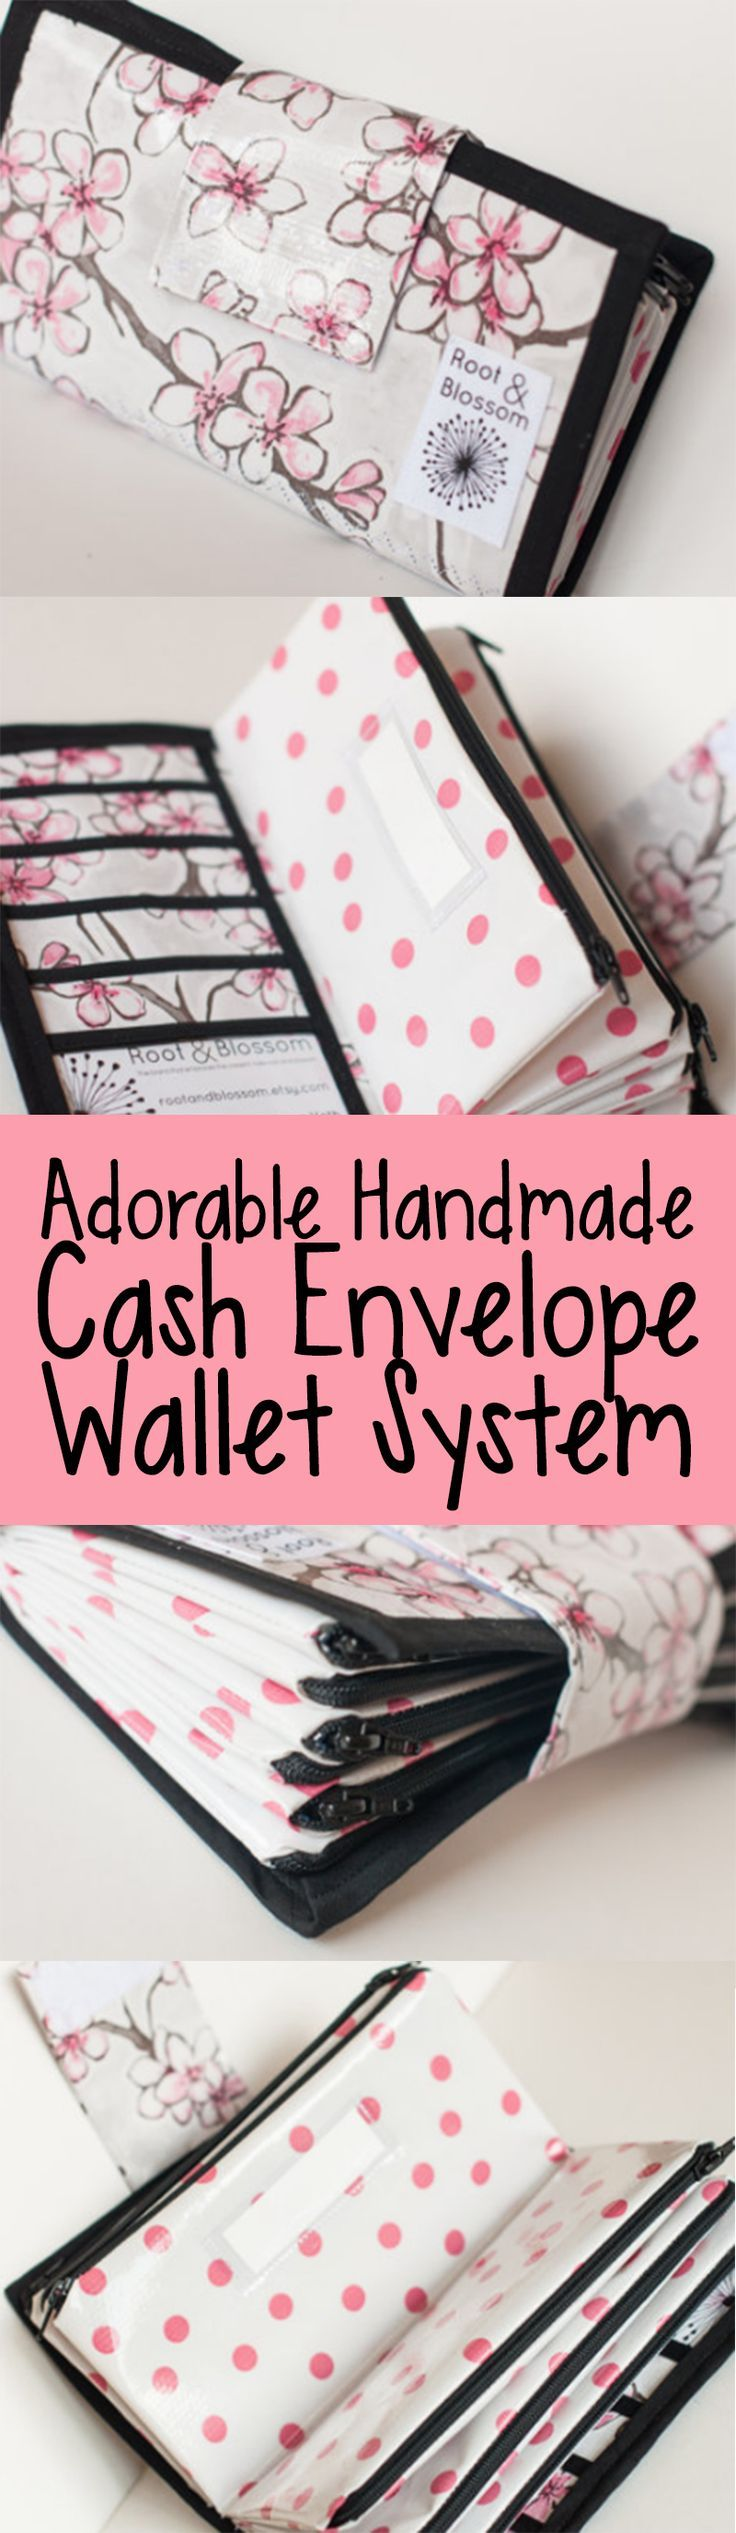 omgosh. this Dave-Ramsey style cash envelope wallet is SO adorable! ♥